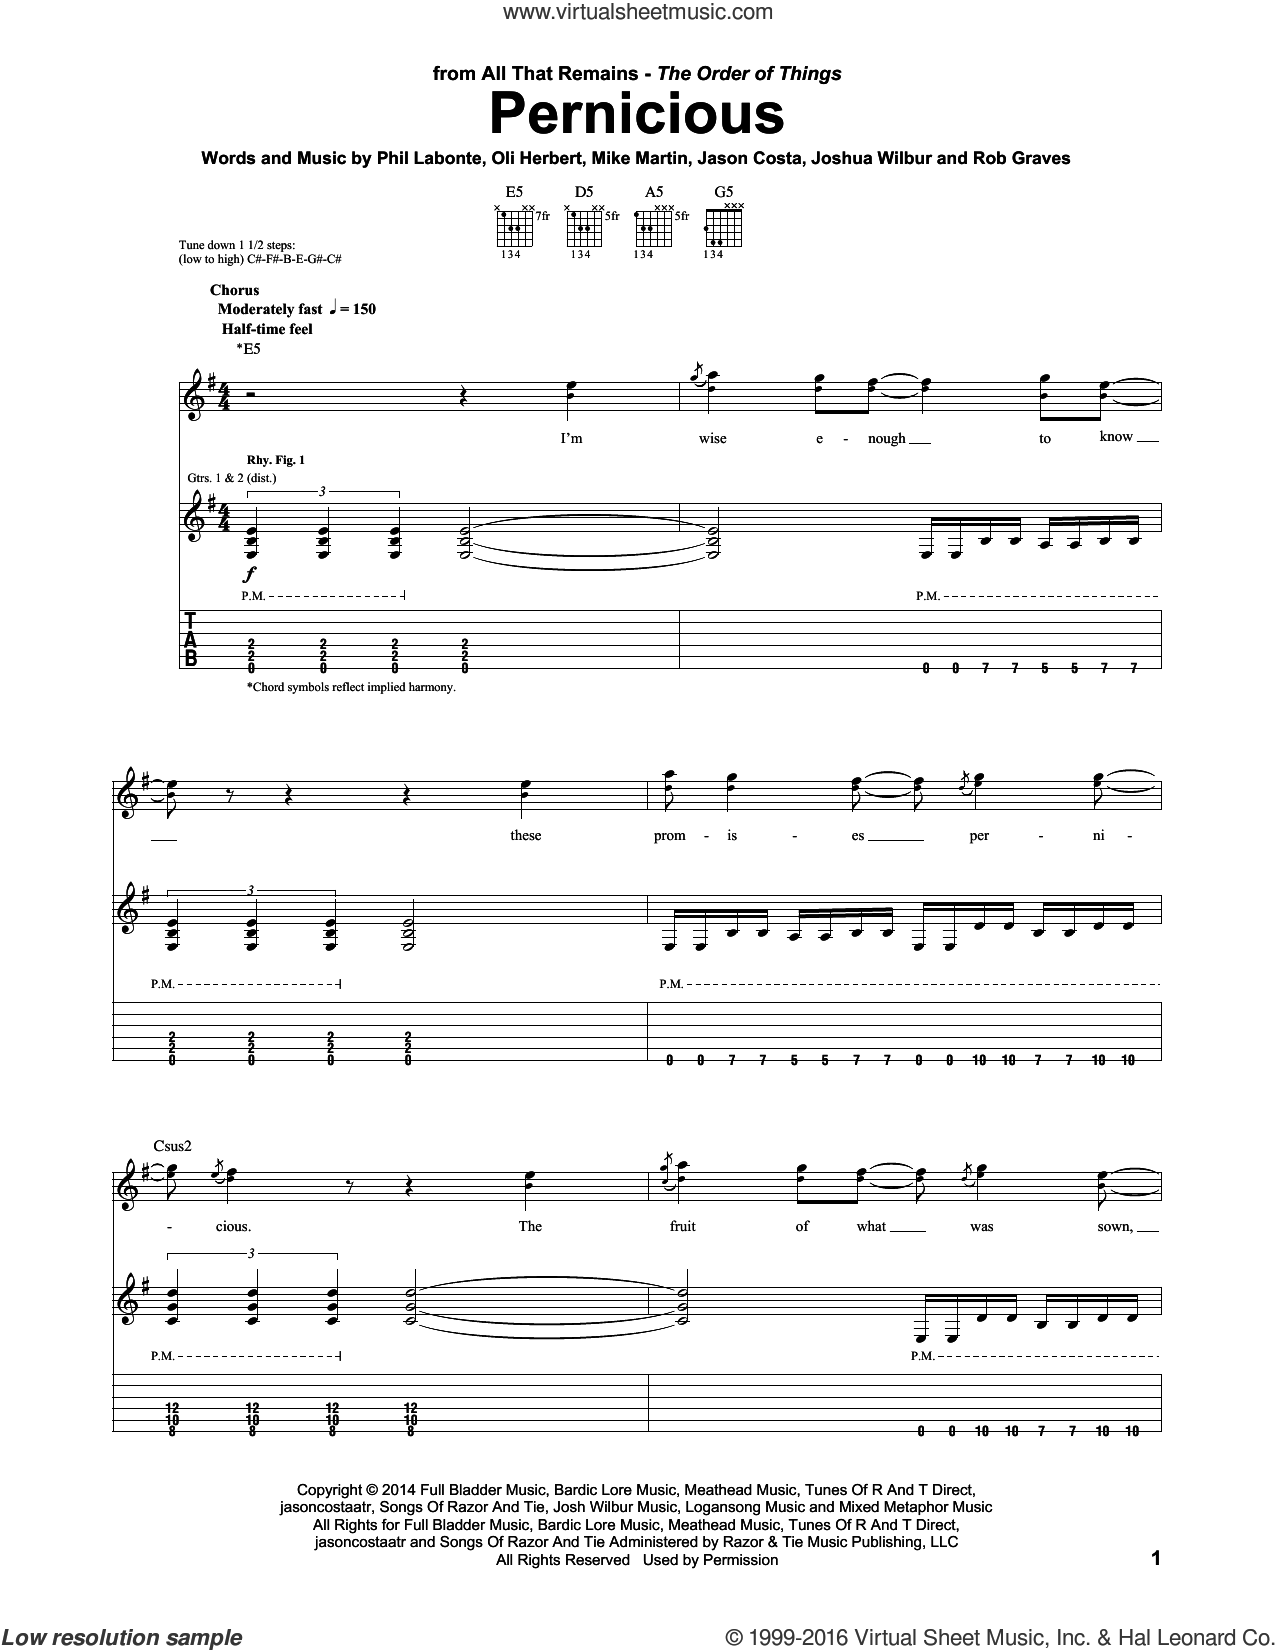 Pernicious sheet music for guitar (tablature) by All That Remains, Jason Costa, Joshua Wilbur, Mike Martin, Oli Herbert, Phil Labonte and Rob Graves, intermediate